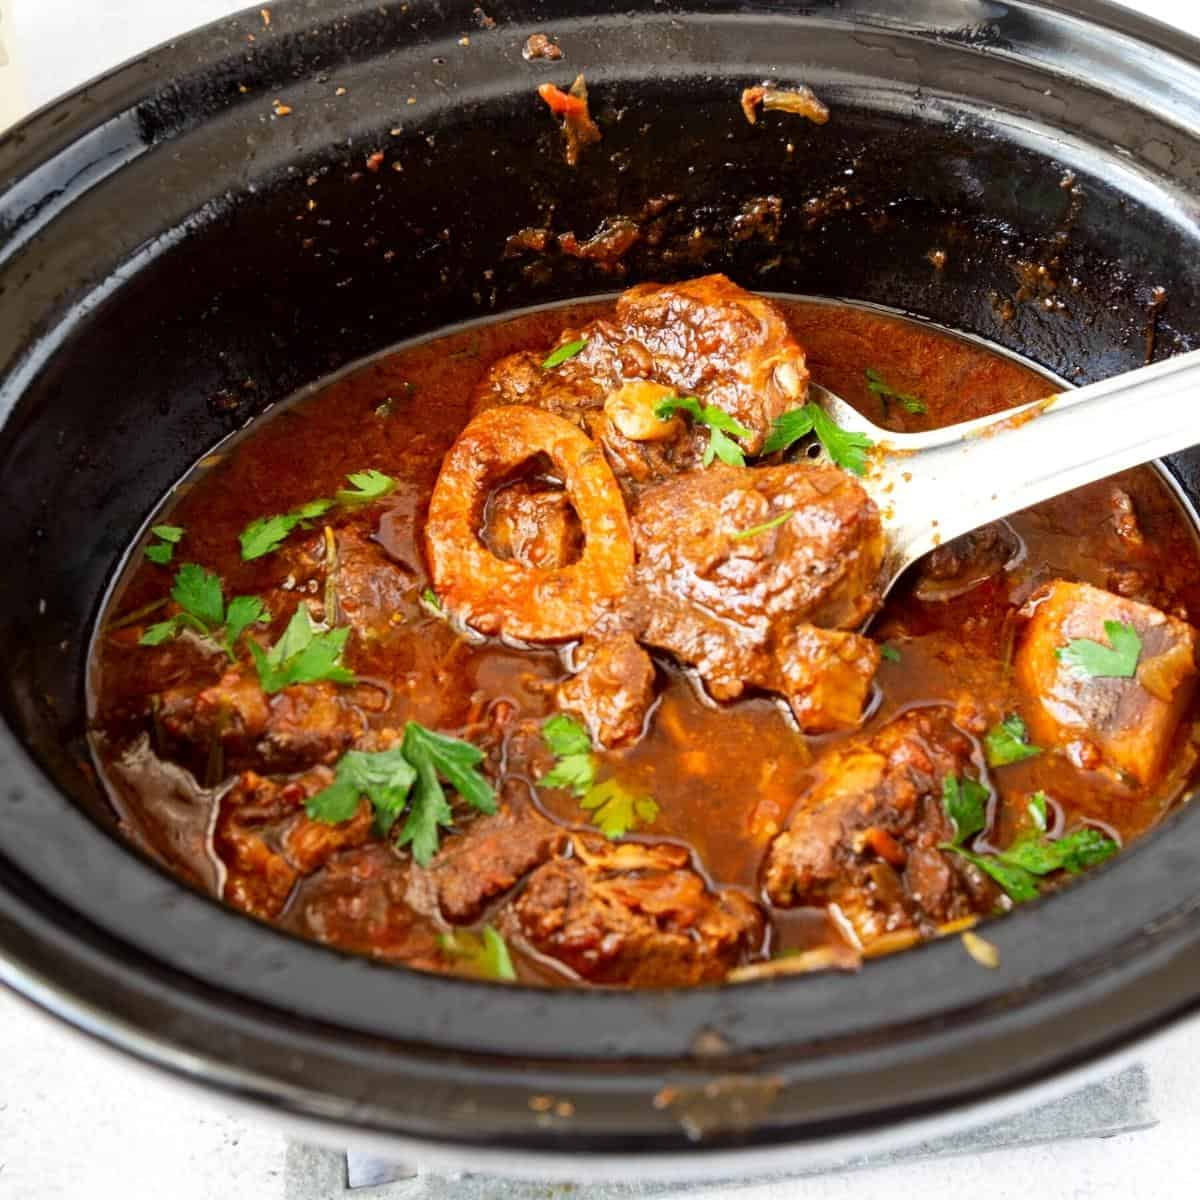 A slow cooker with shanks.